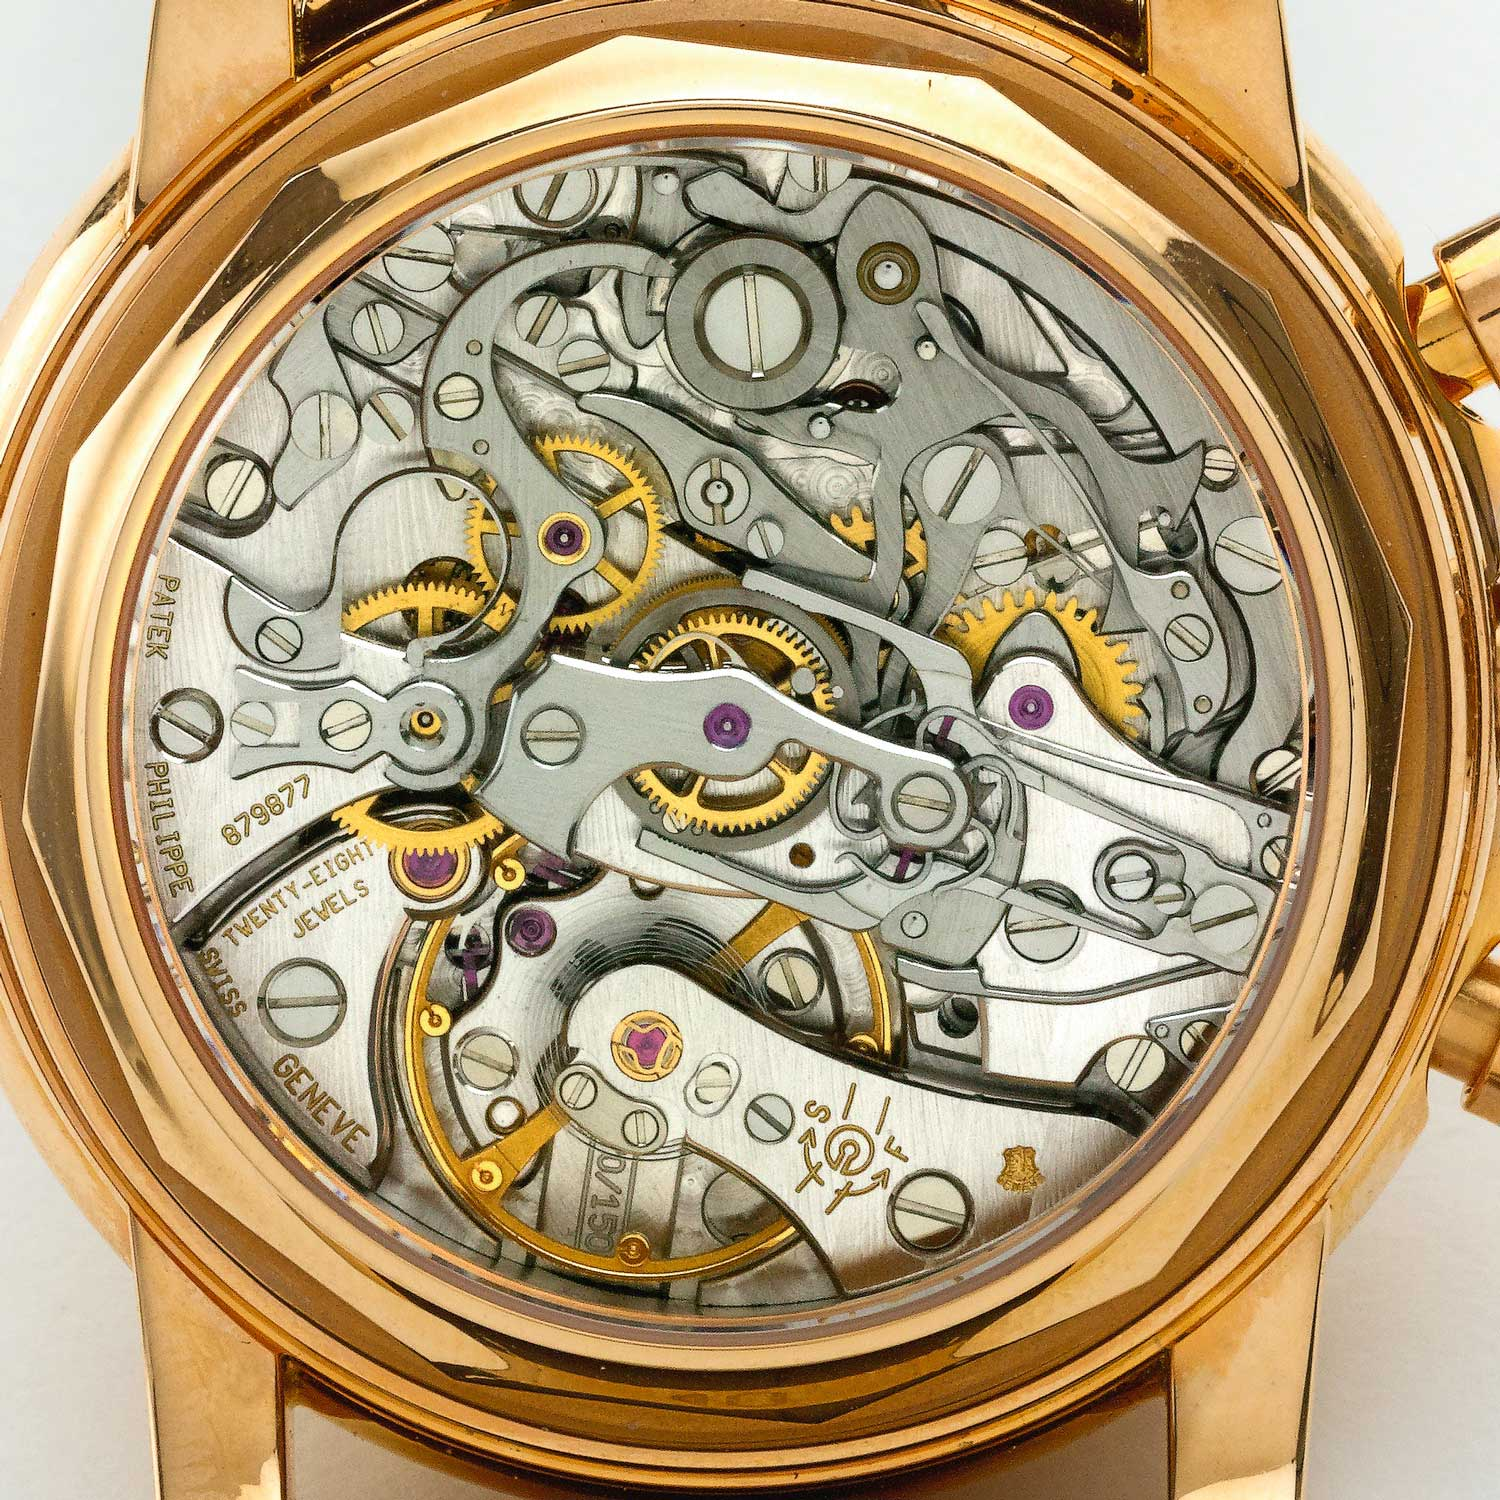 A caseback view of the Patek Philippe 5004, showcasing the Lemania-based CHR 27-70Q (Image: sothebys.com)